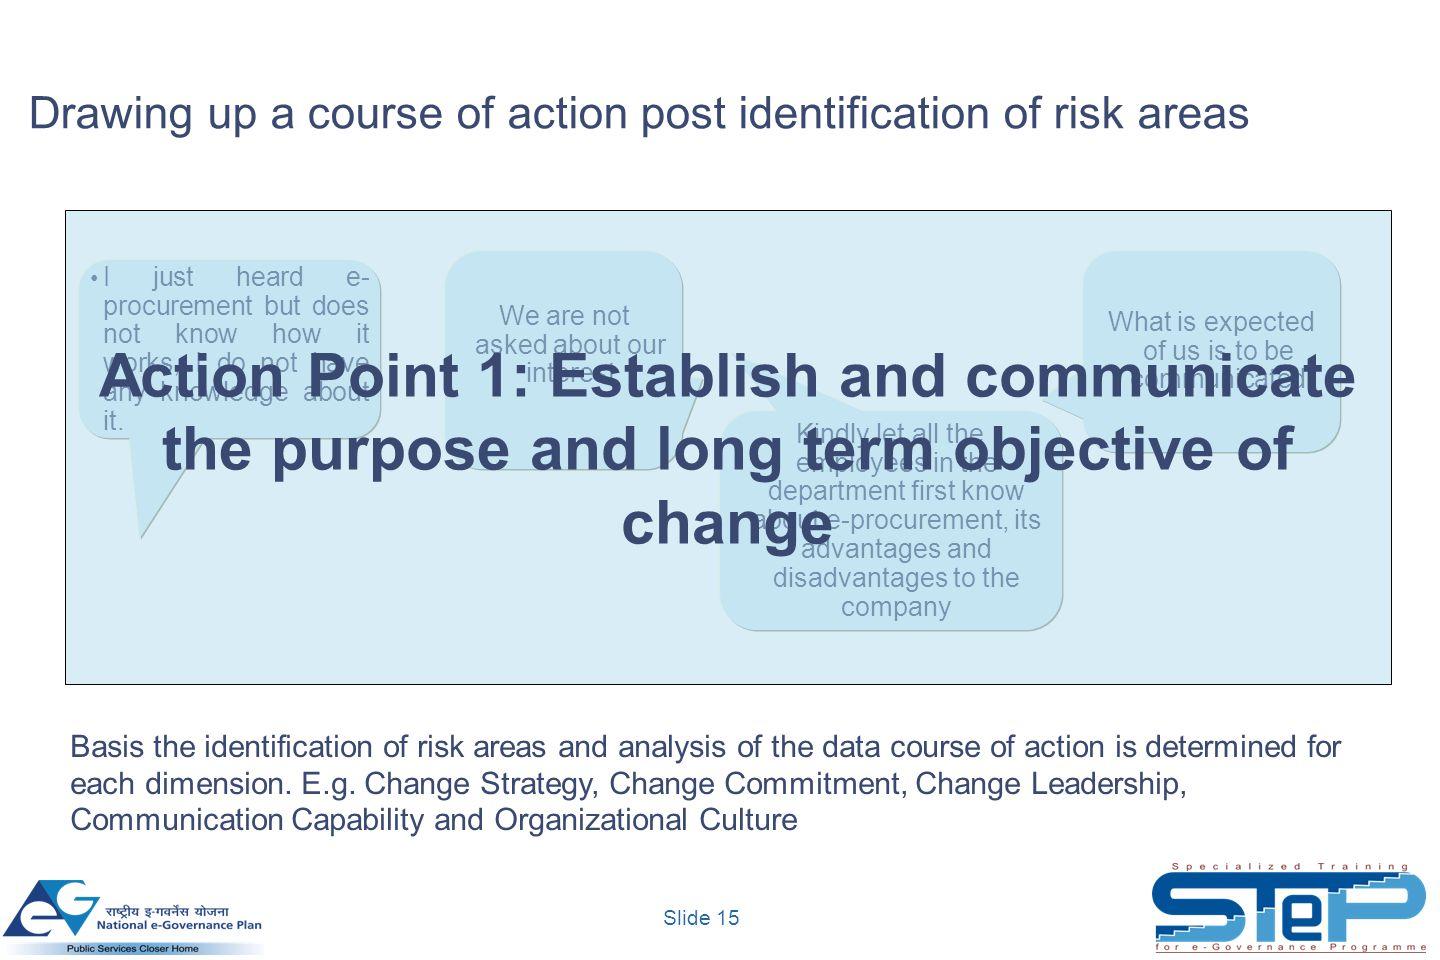 Drawing up a course of action post identification of risk areas